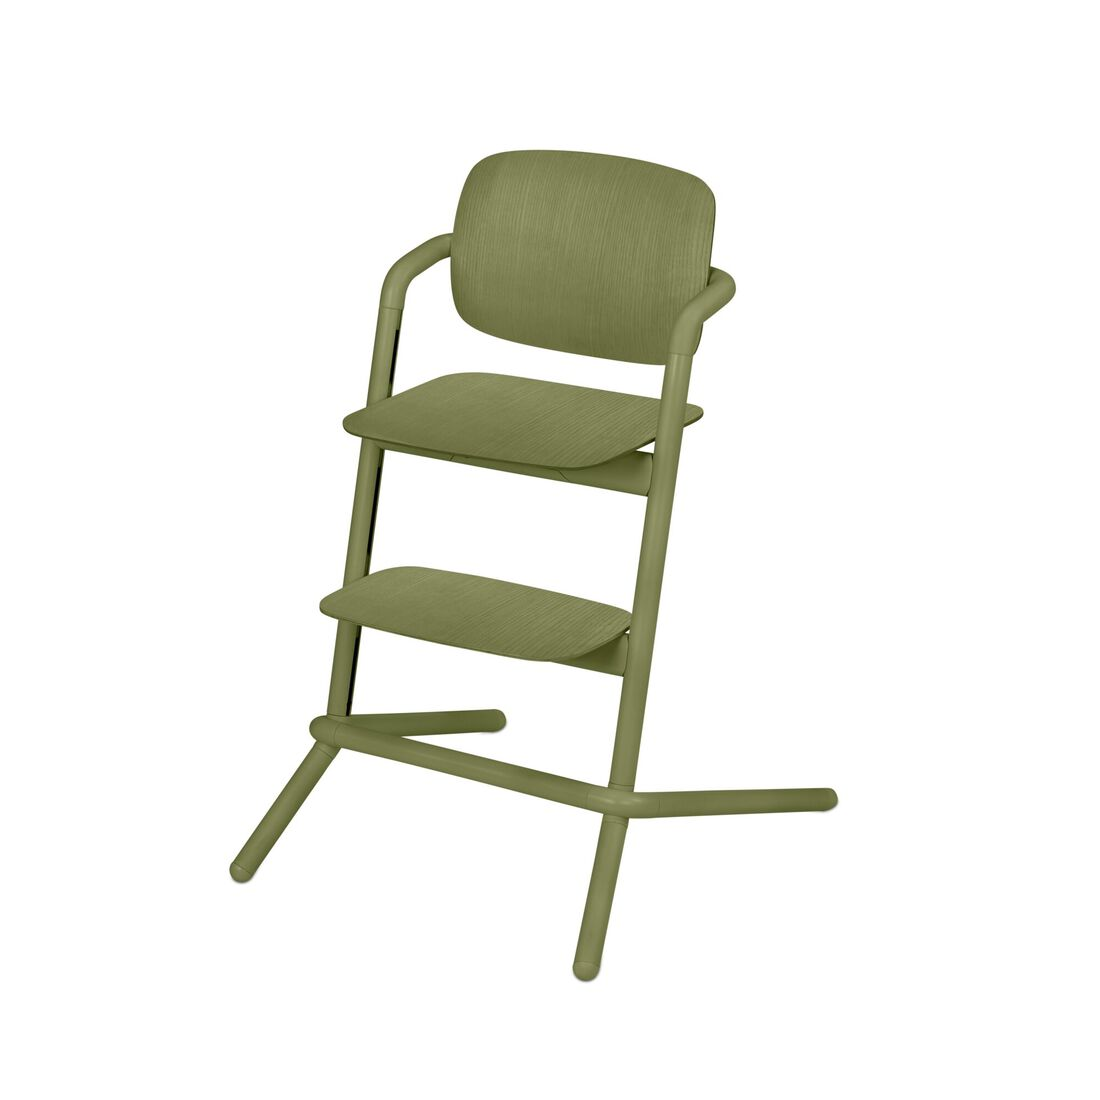 CYBEX Lemo Chair - Outback Green (Wood) in Outback Green (Wood) large image number 1